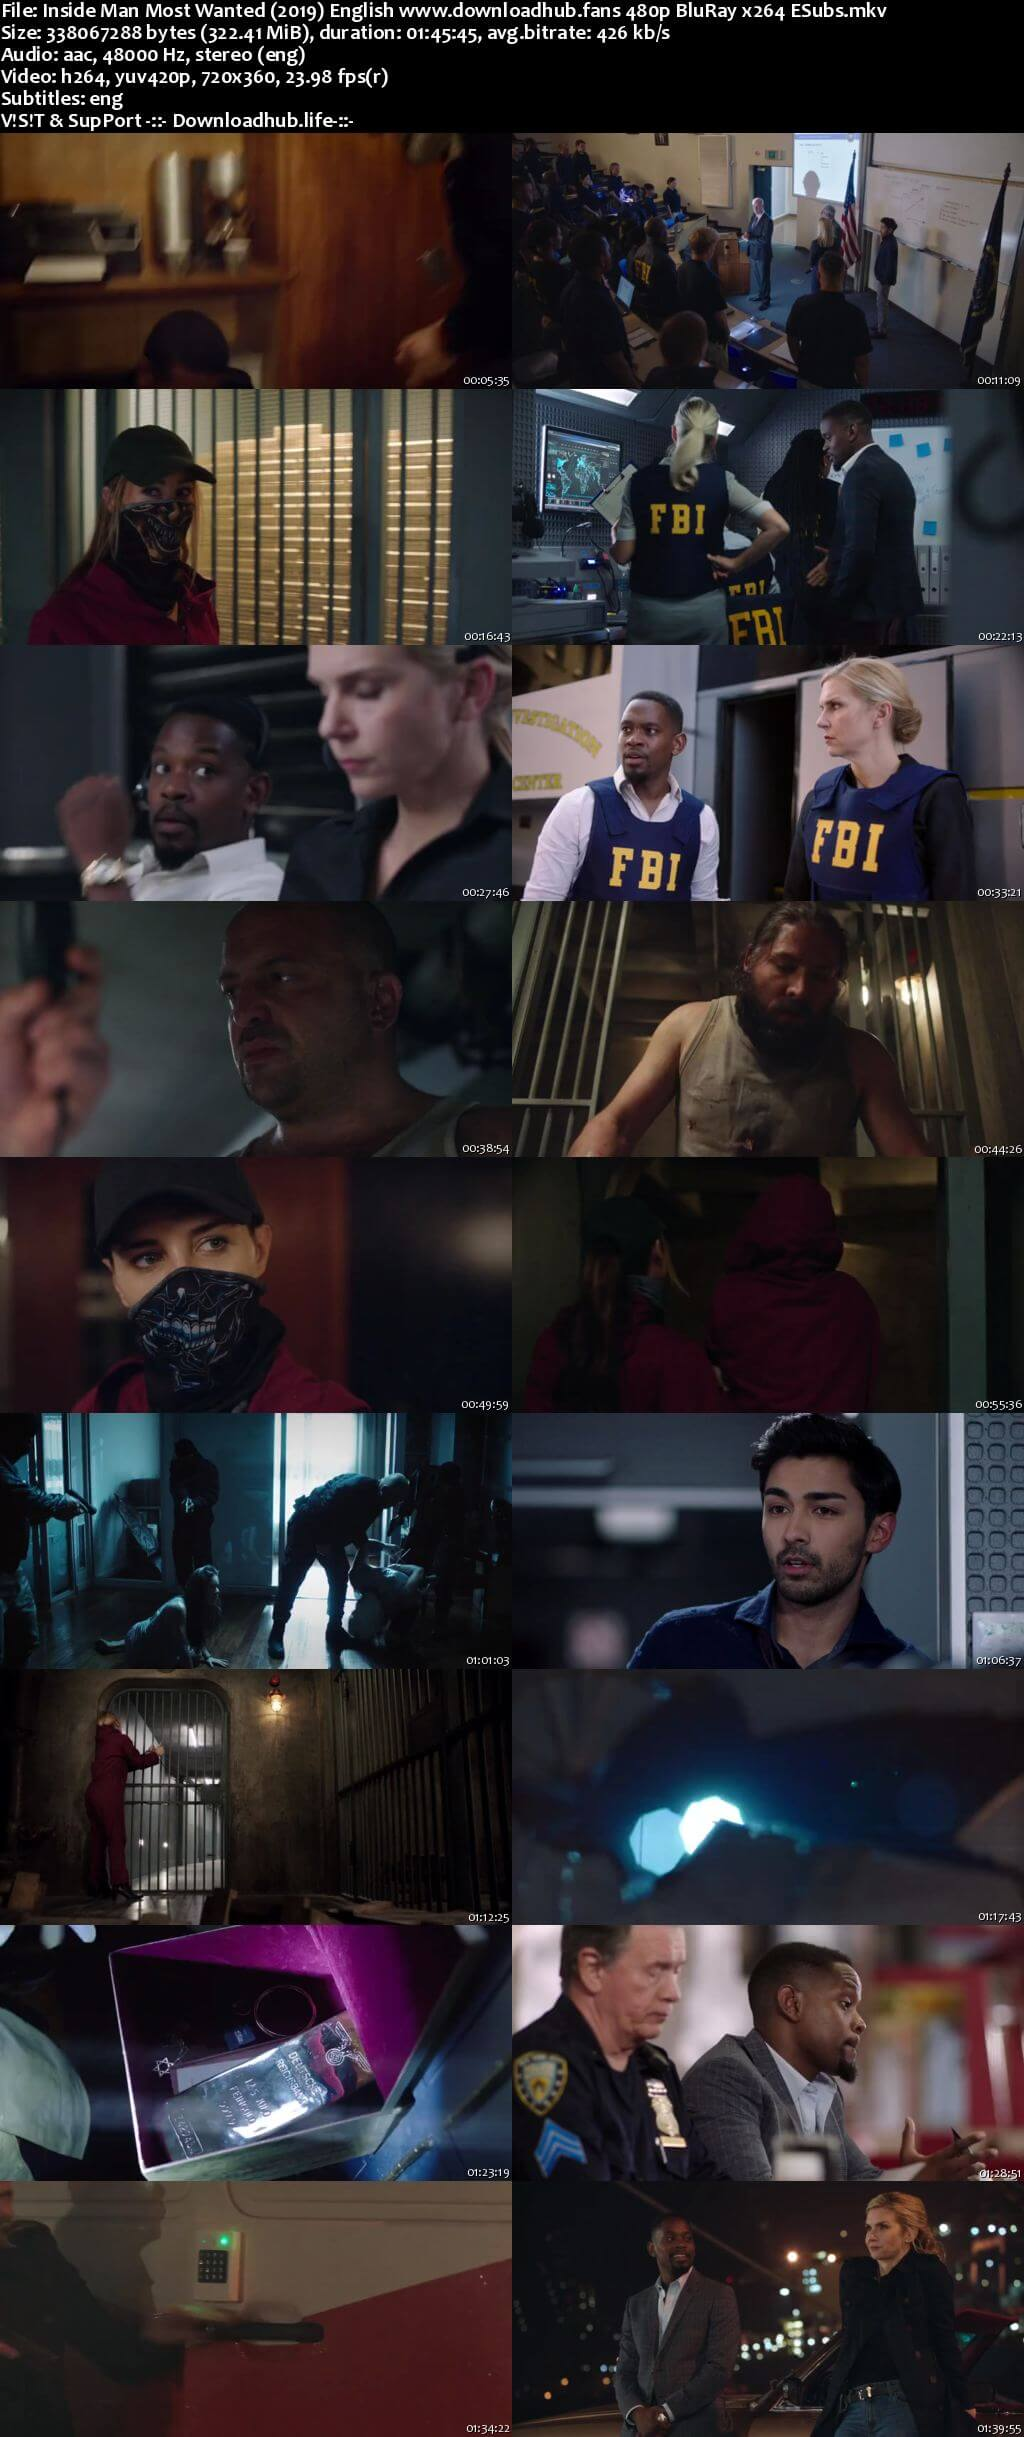 Inside Man Most Wanted 2019 English 300MB Web-DL 480p ESubs